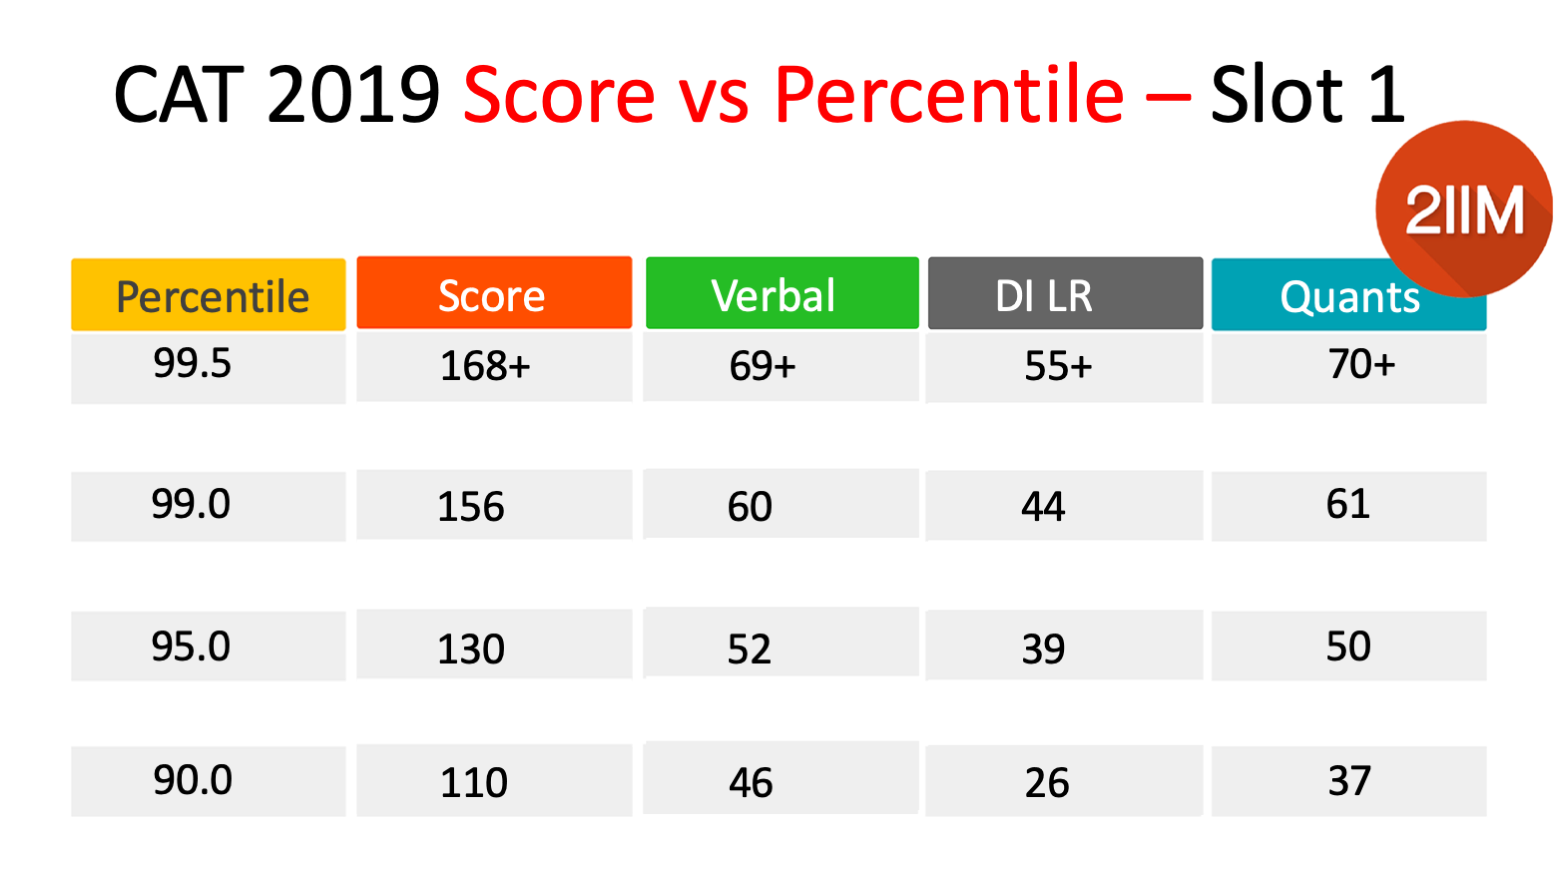 CAT 2019 - Slot 1 - Score to Percentile Table